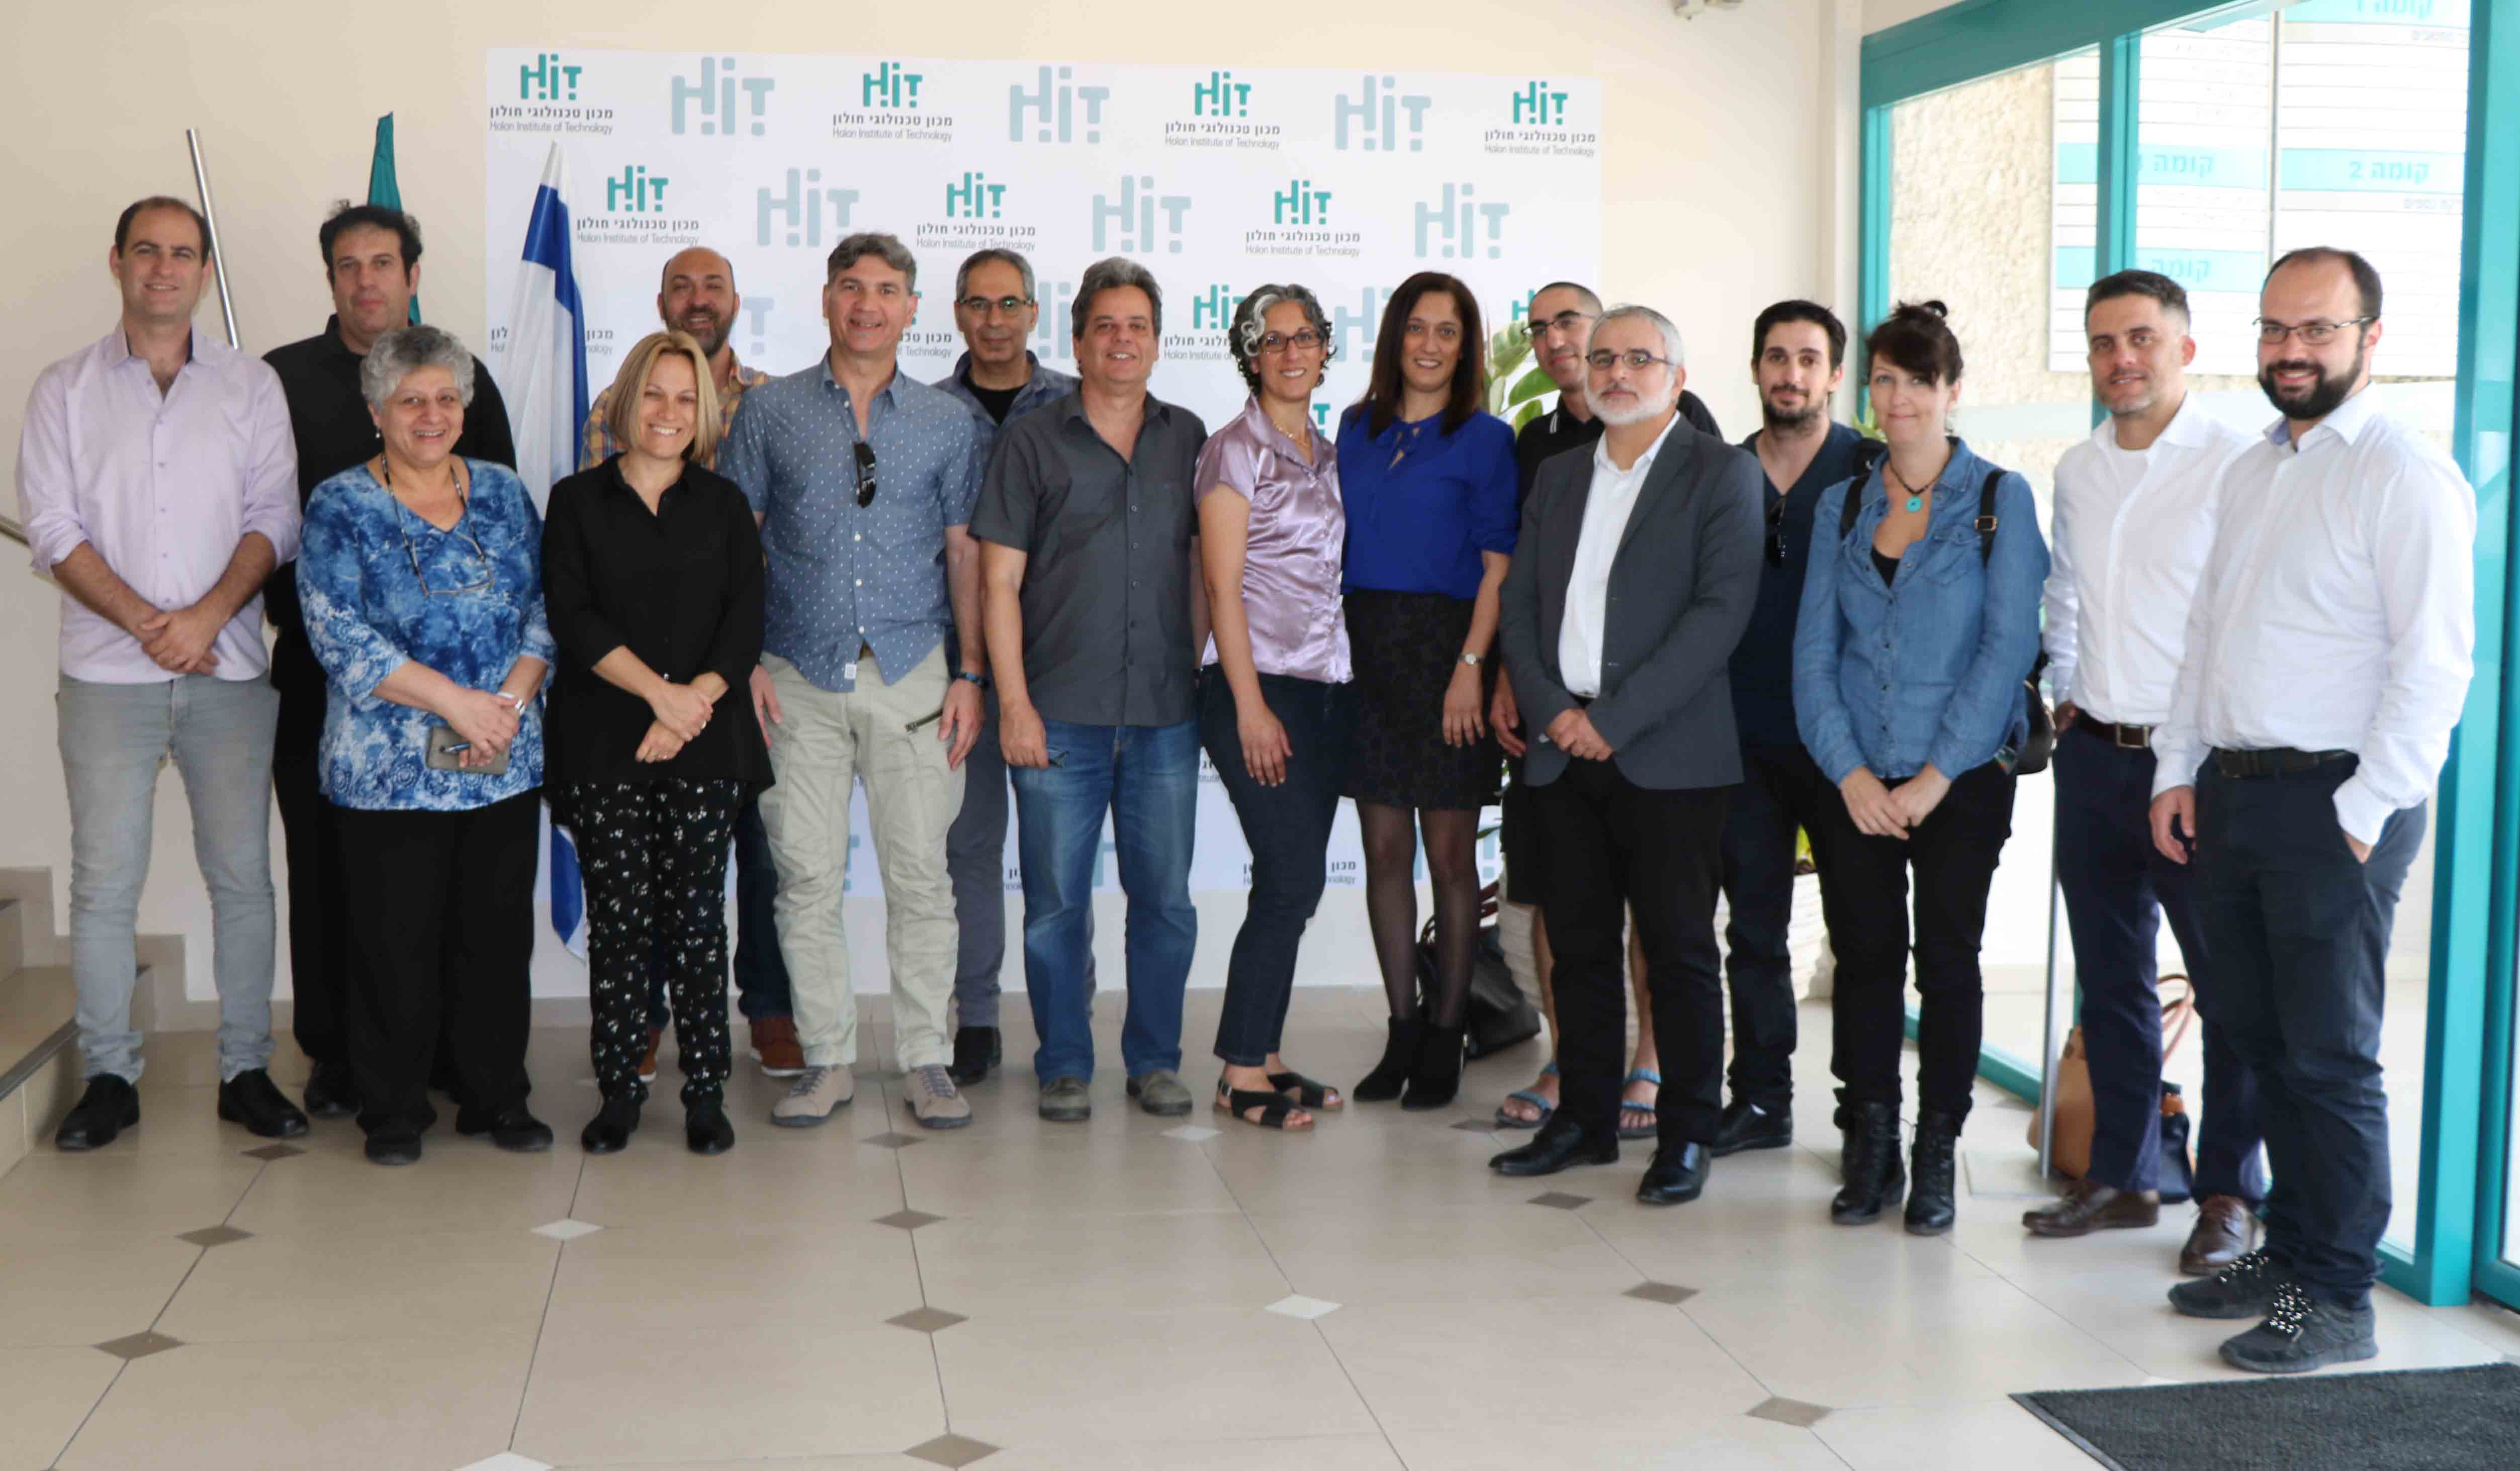 iPEN's 1st Progress Meeting took place at HIT